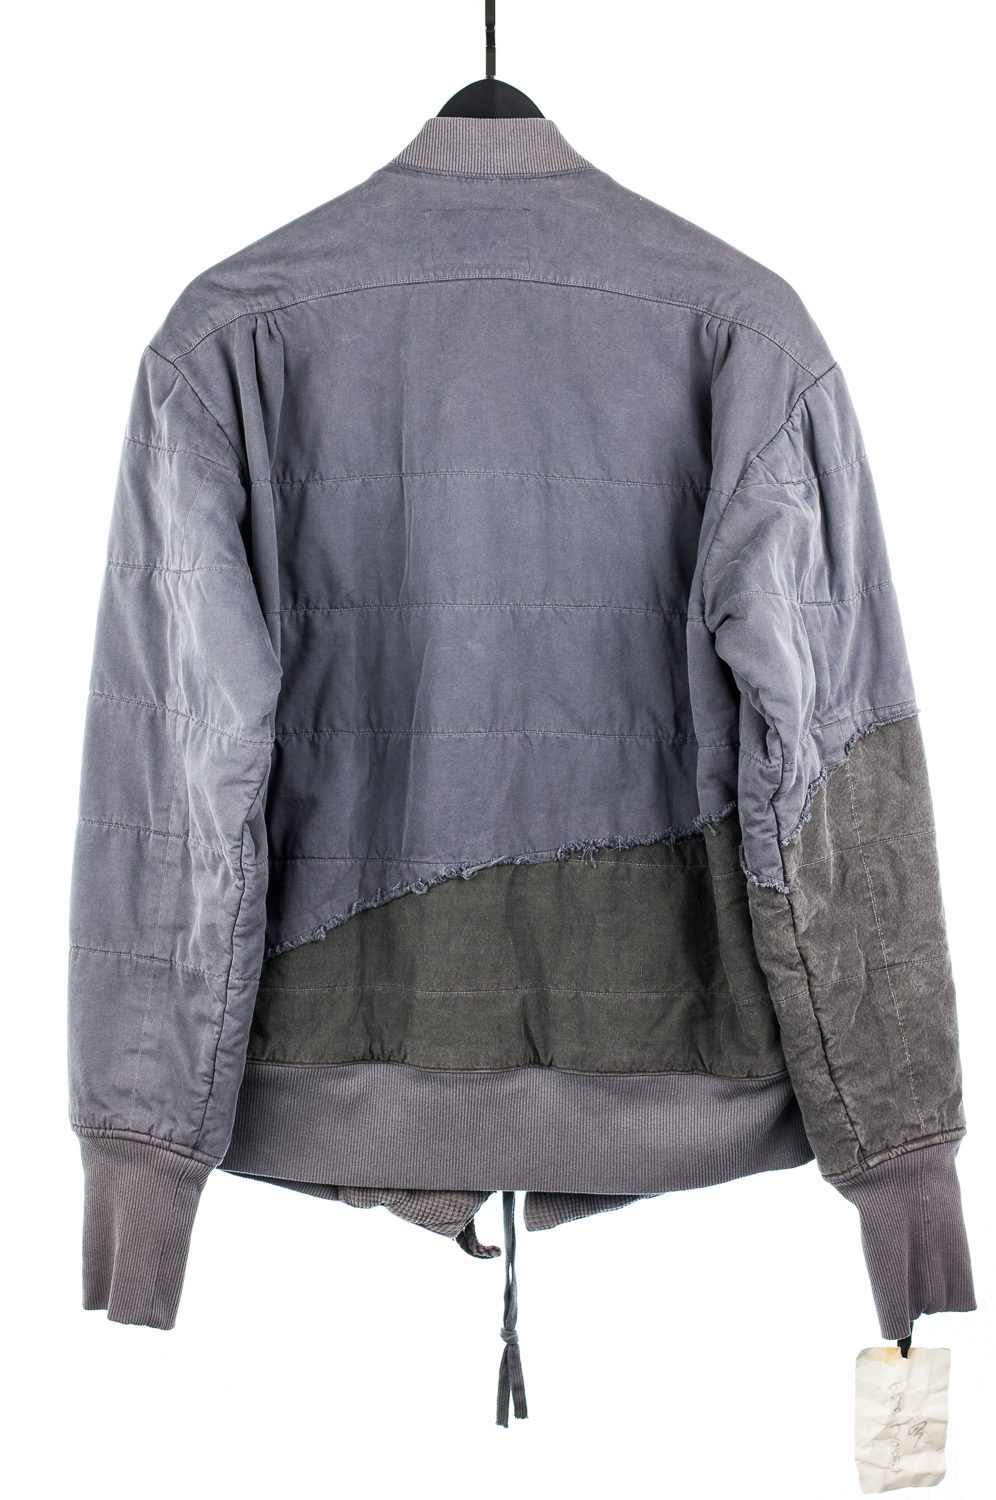 SS17 50/50 Army Tent Bomber